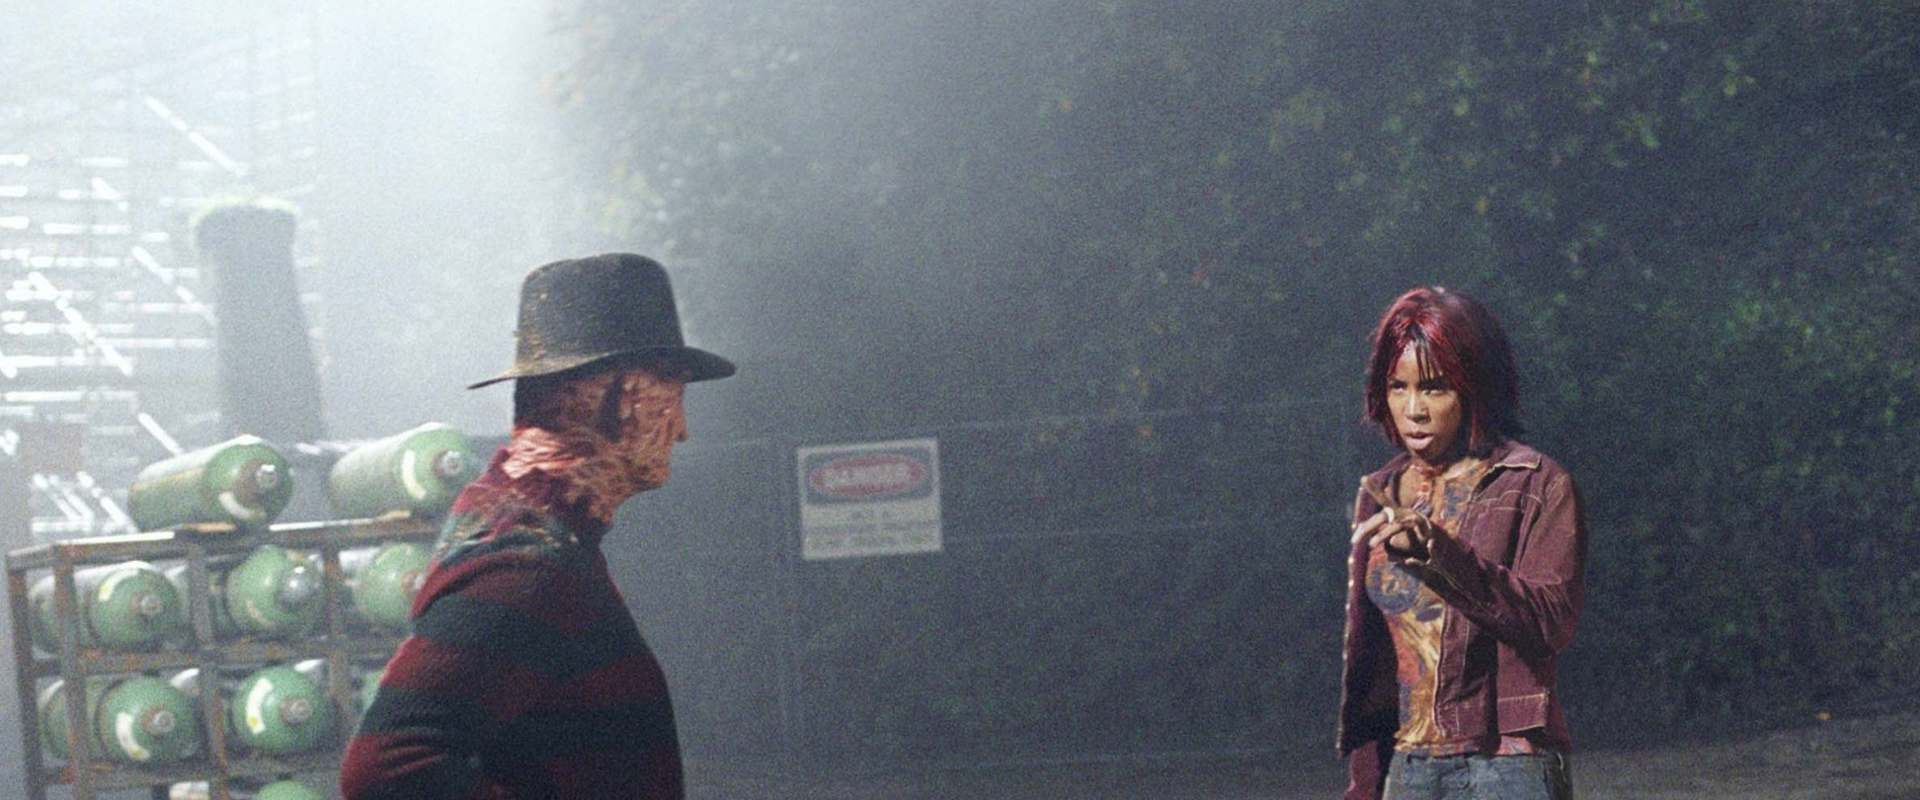 Freddy vs. Jason background 1